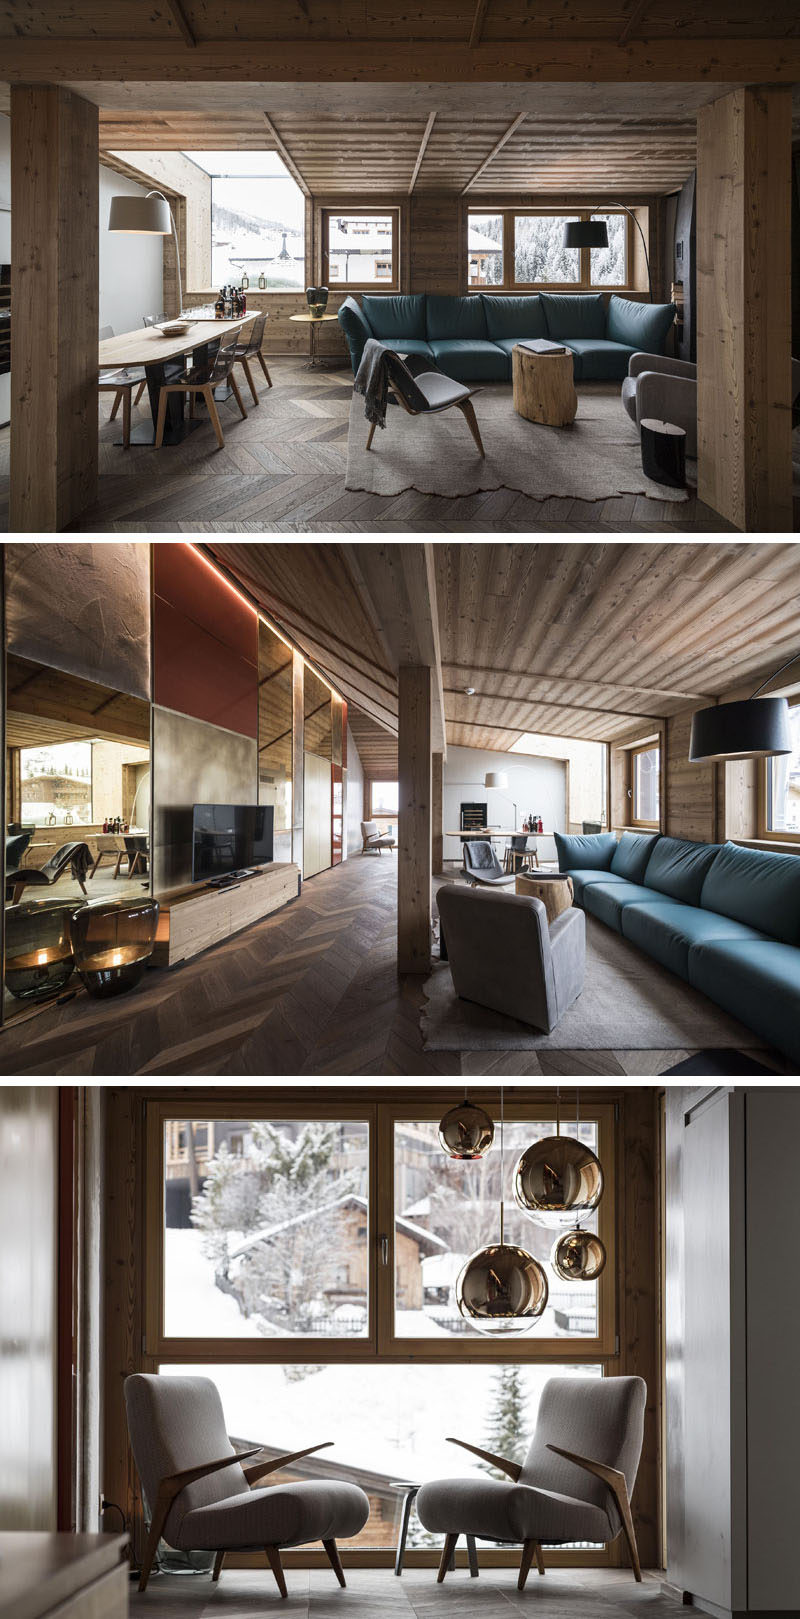 This hotel penthouse has a shared living room and dining room with windows overlooking the mountains, while a small sitting area nearby looks out towards the surrounding neighborhood. #LivingRoom #HotelSuite #InteriorDesign #Penthouse